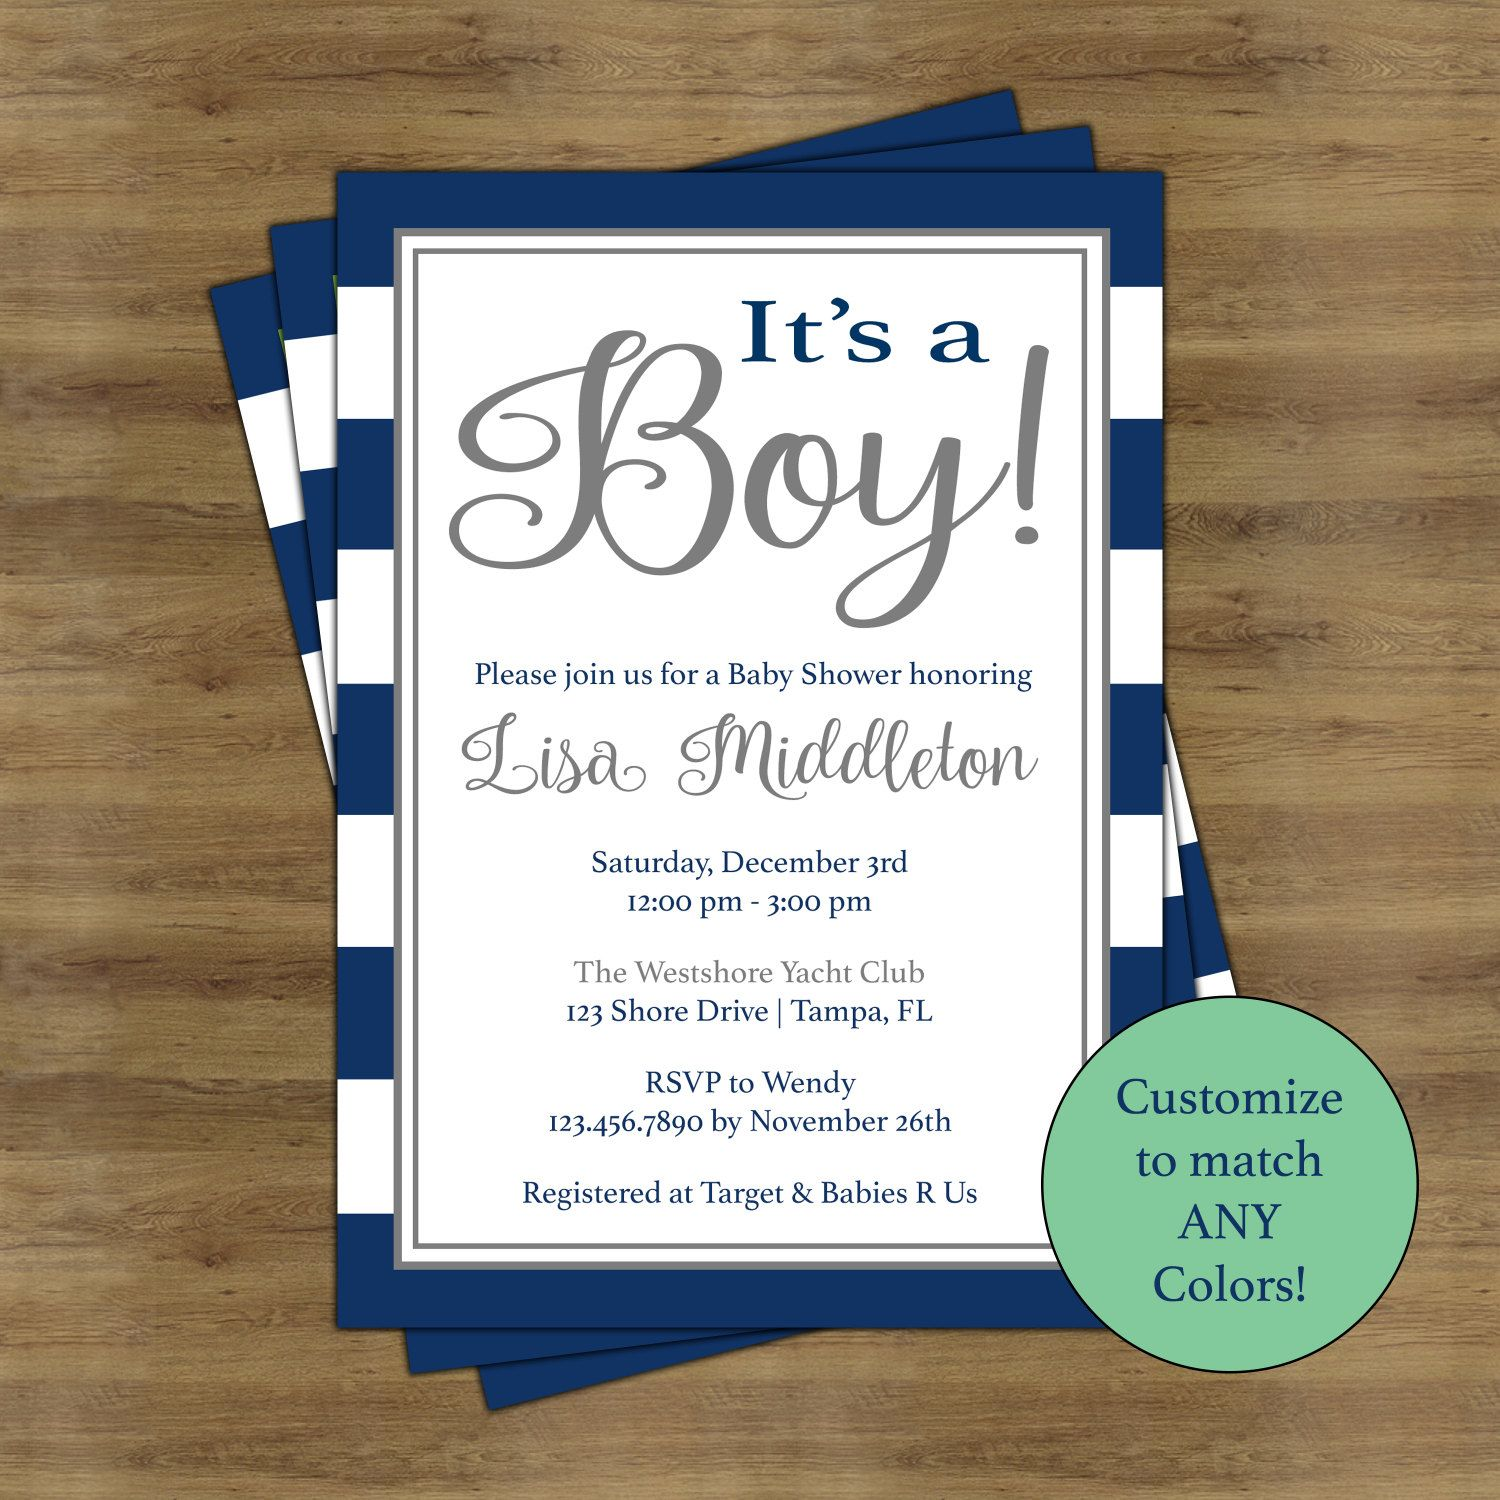 Its a boy baby shower invitations for boys simple baby shower its a boy baby shower invitations for boys simple baby shower invitation printable navy baby shower invites boy blue baby shower by sophisticatedswan on filmwisefo